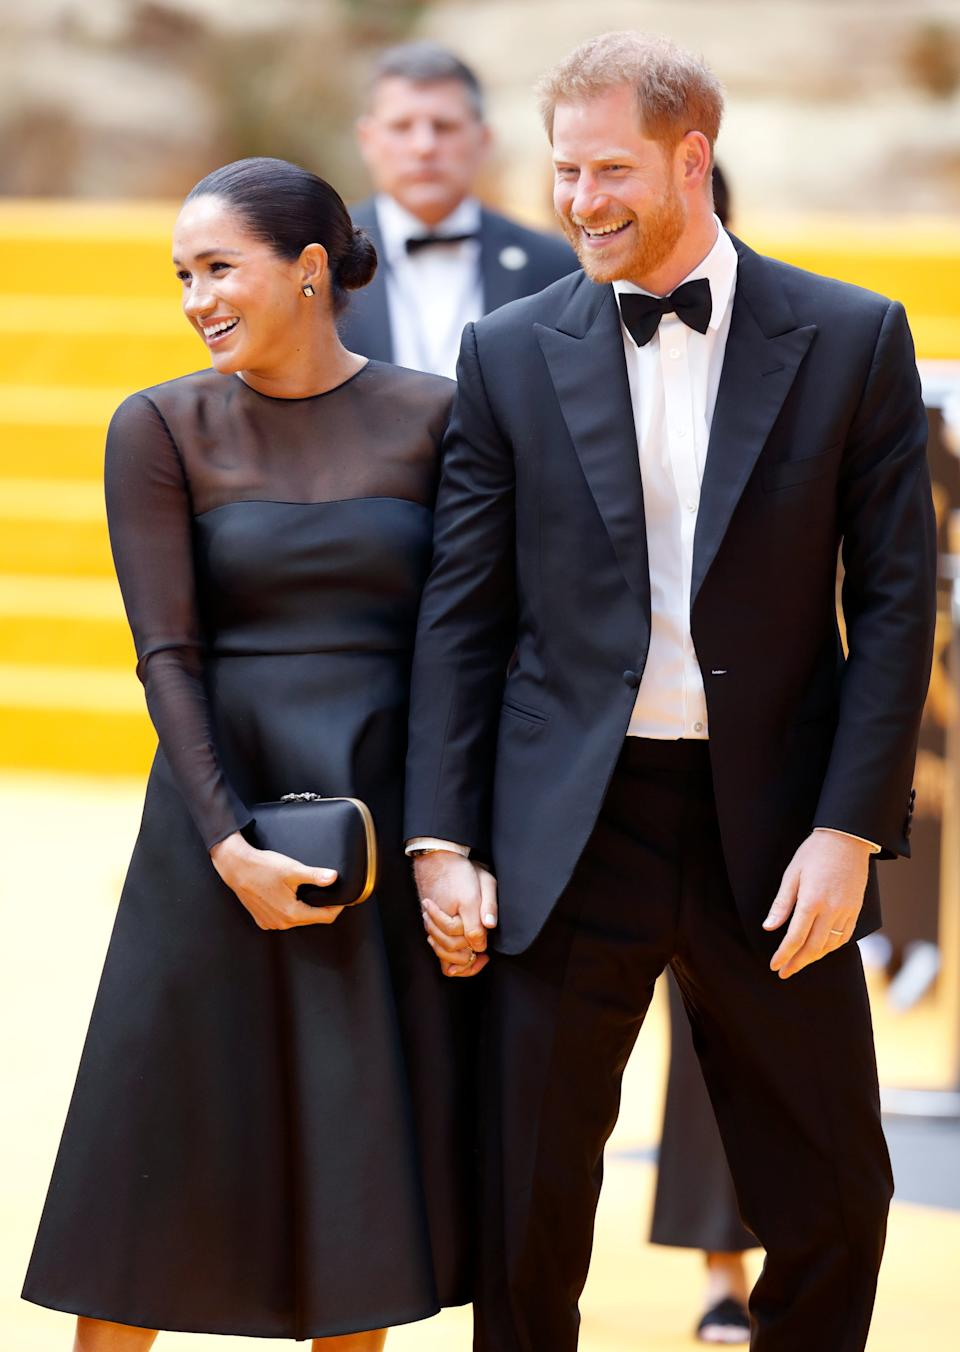 LONDON, UNITED KINGDOM - JULY 14: (EMBARGOED FOR PUBLICATION IN UK NEWSPAPERS UNTIL 24 HOURS AFTER CREATE DATE AND TIME) Meghan, Duchess of Sussex and Prince Harry, Duke of Sussex attend